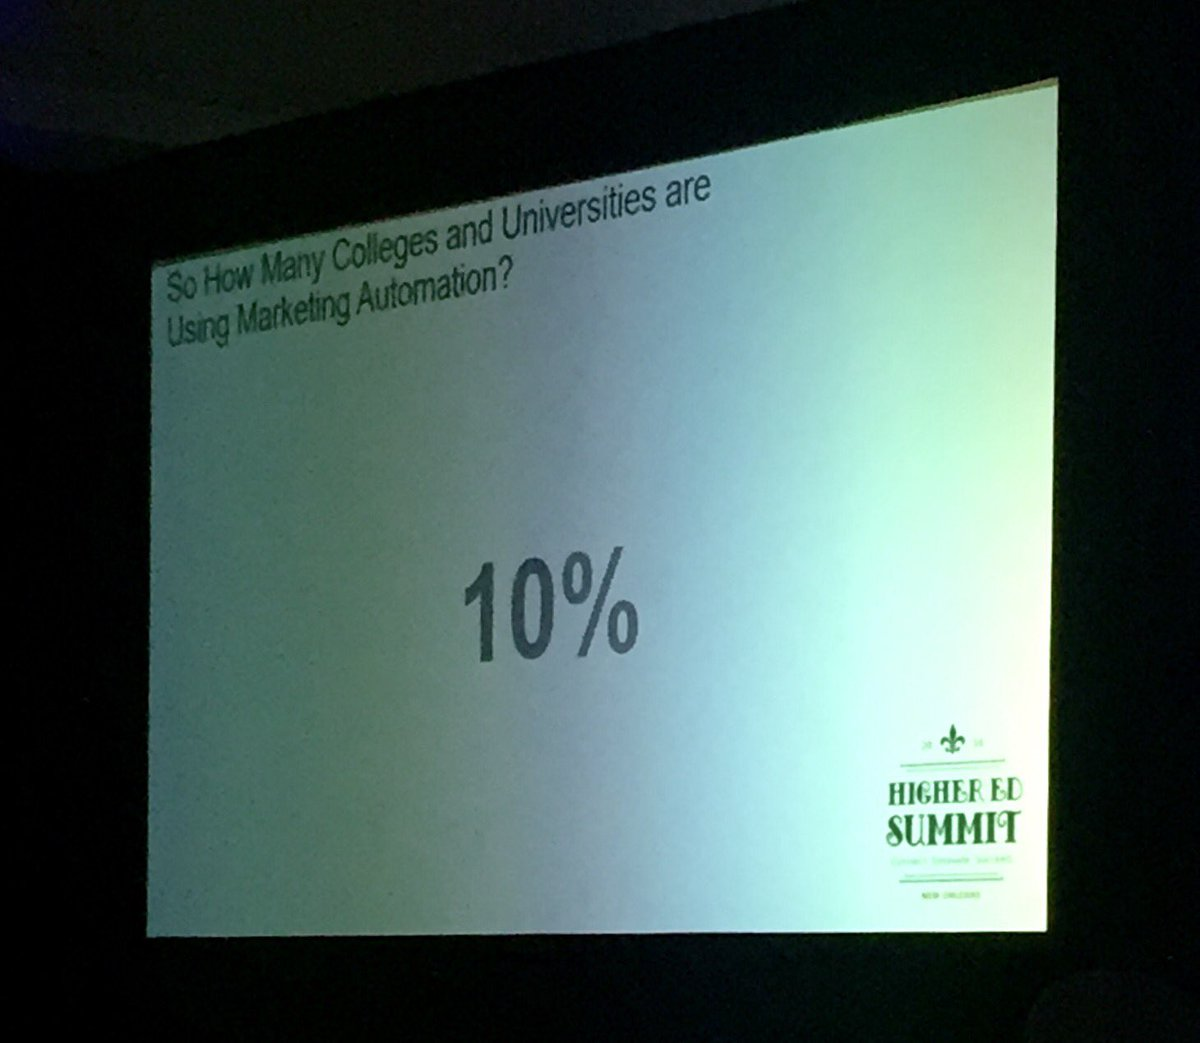 Wow! Only 10% of colleges and universities use marketing automation tools. > Huge opportunity. #HESummit16 https://t.co/vbMqiIKfsf